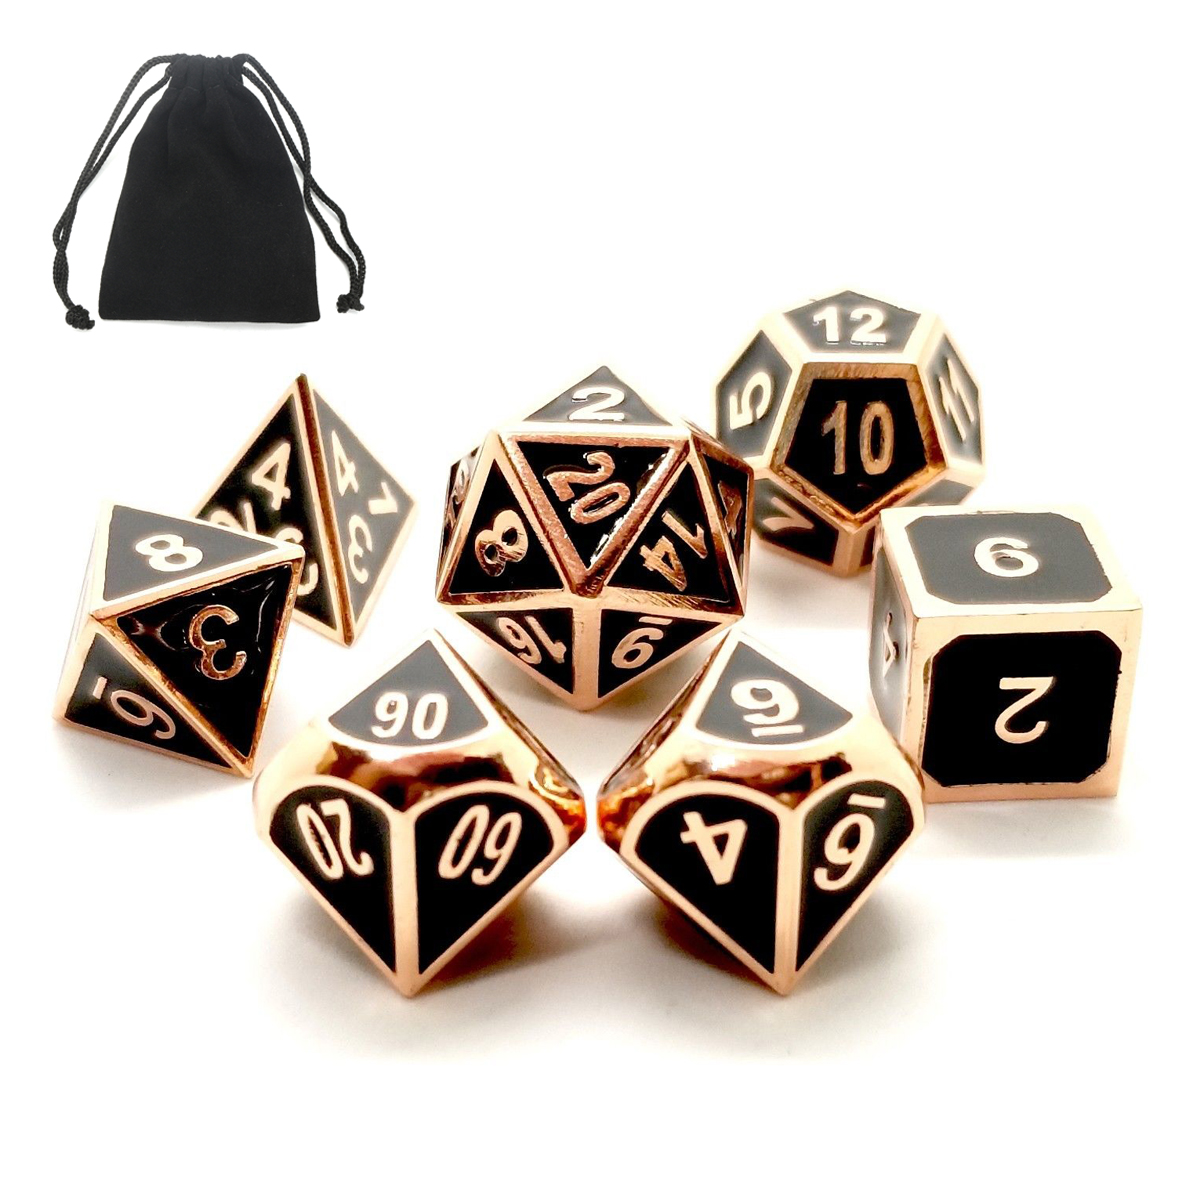 ECUBEE Solid Metal Polyhedral Dice Role Playing RPG 7 Dice Set With Bag Multisided Dice Set